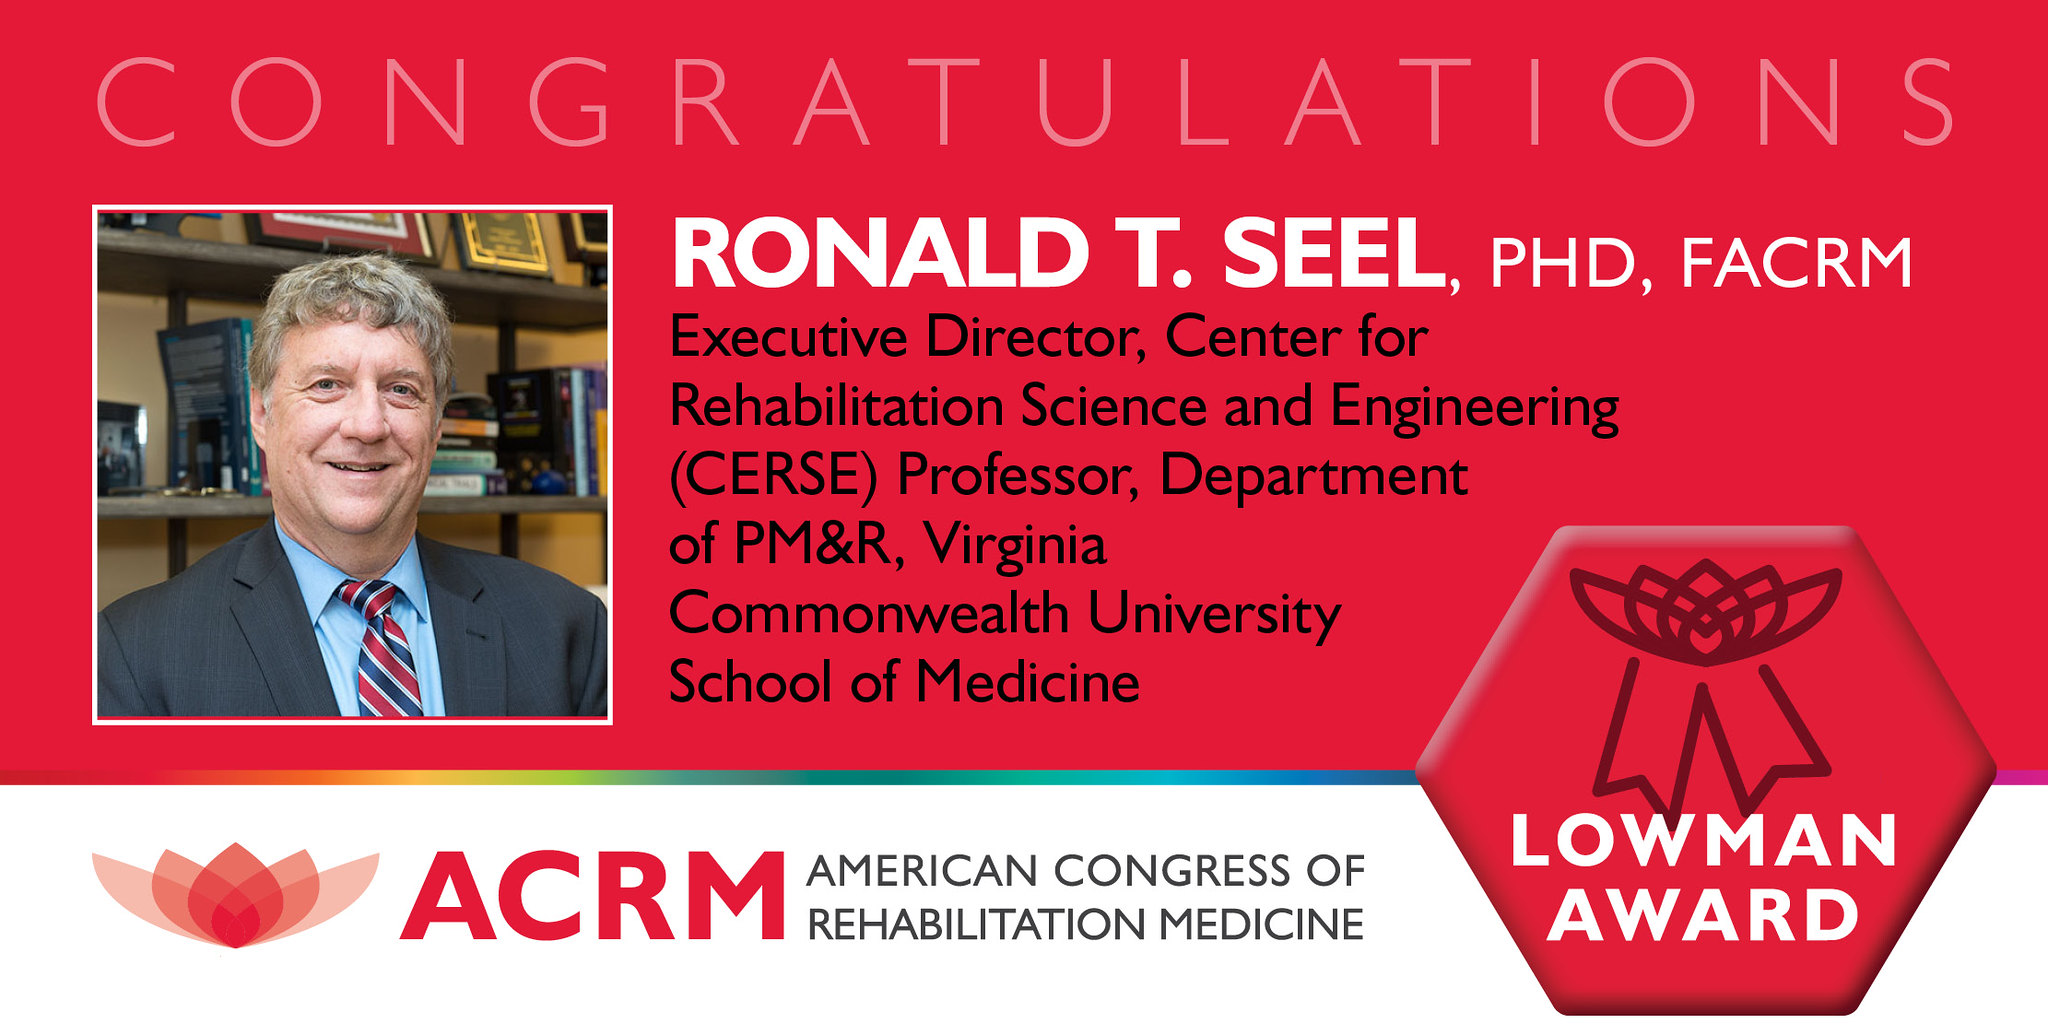 Ronald T. Seel is the 2020 recipient of the ACRM Edward Lowman Award.